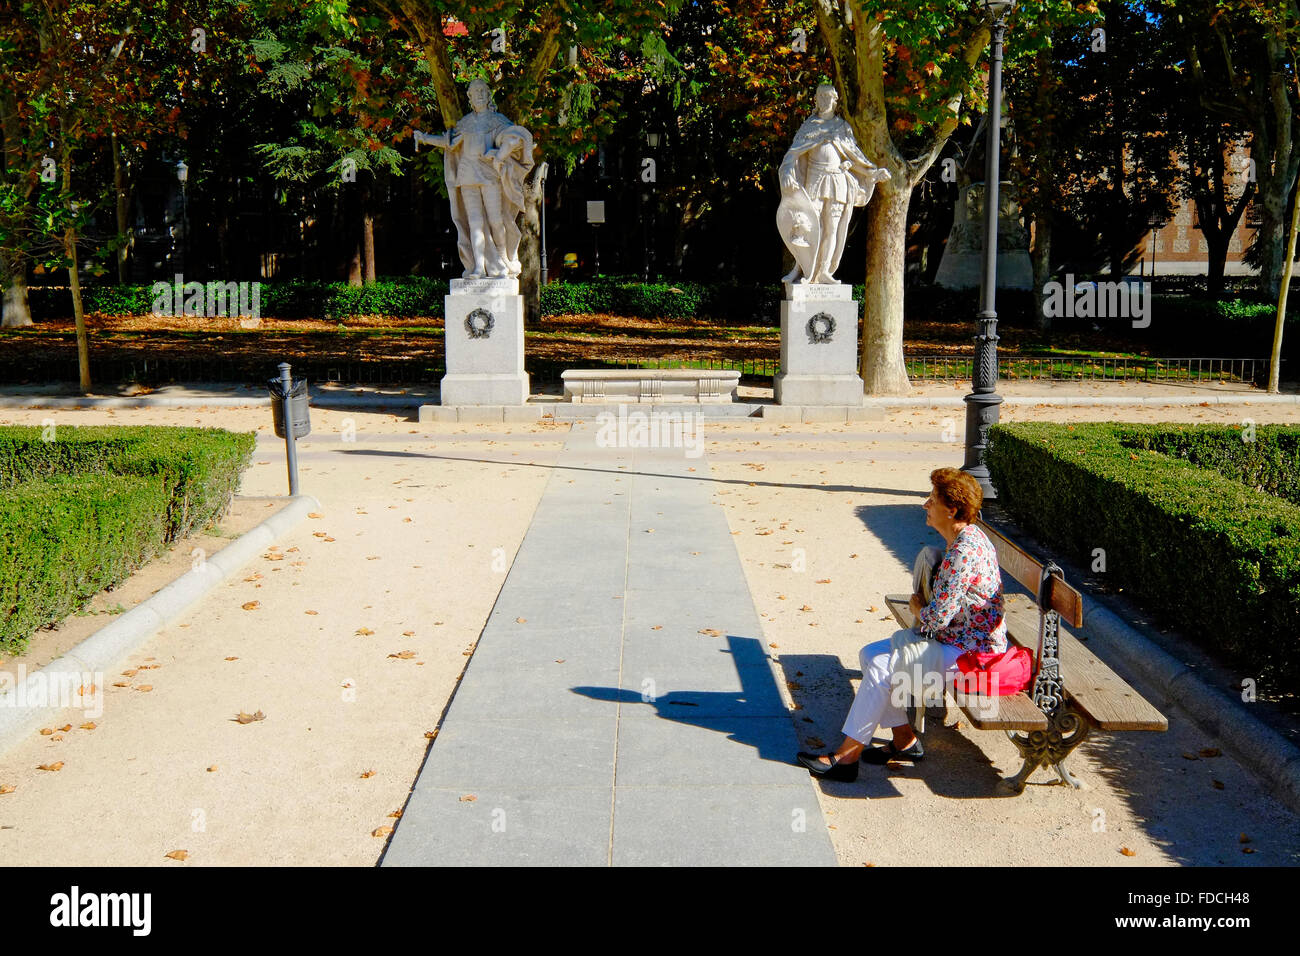 Plaza de Oriente Madrid Spain ES - Stock Image